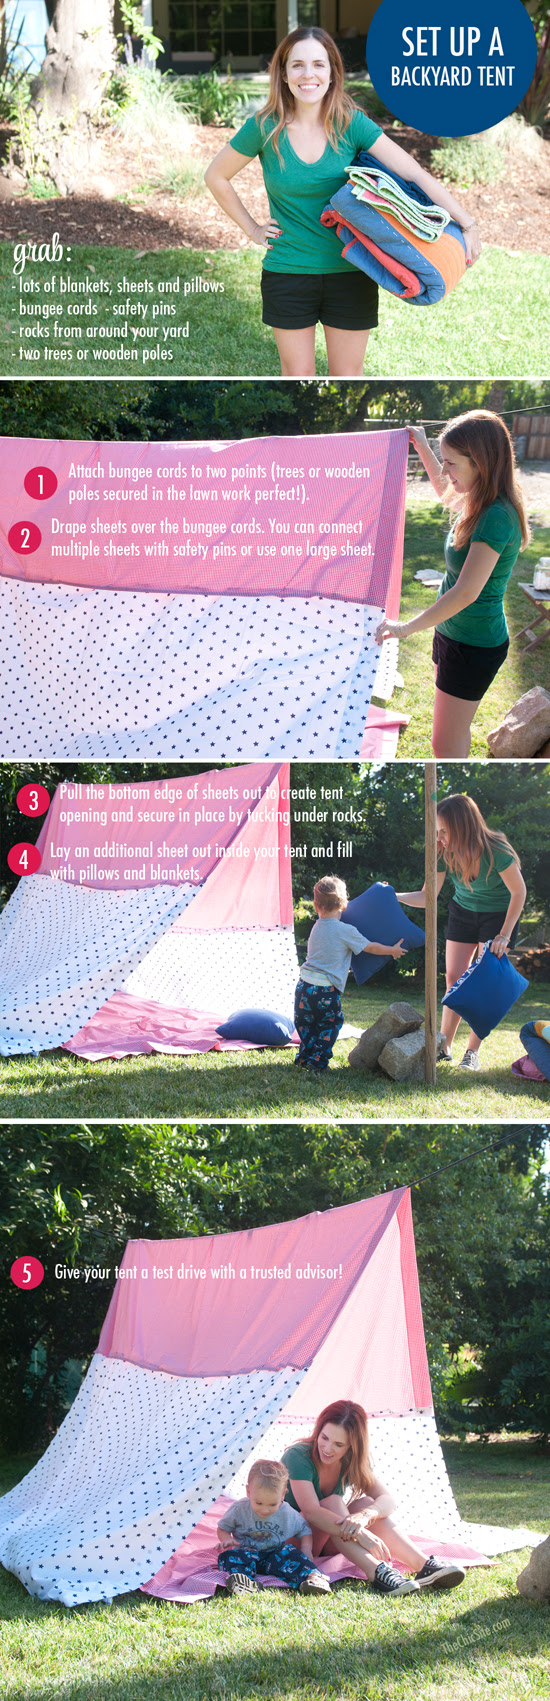 How to Set Up a Sheet Tent